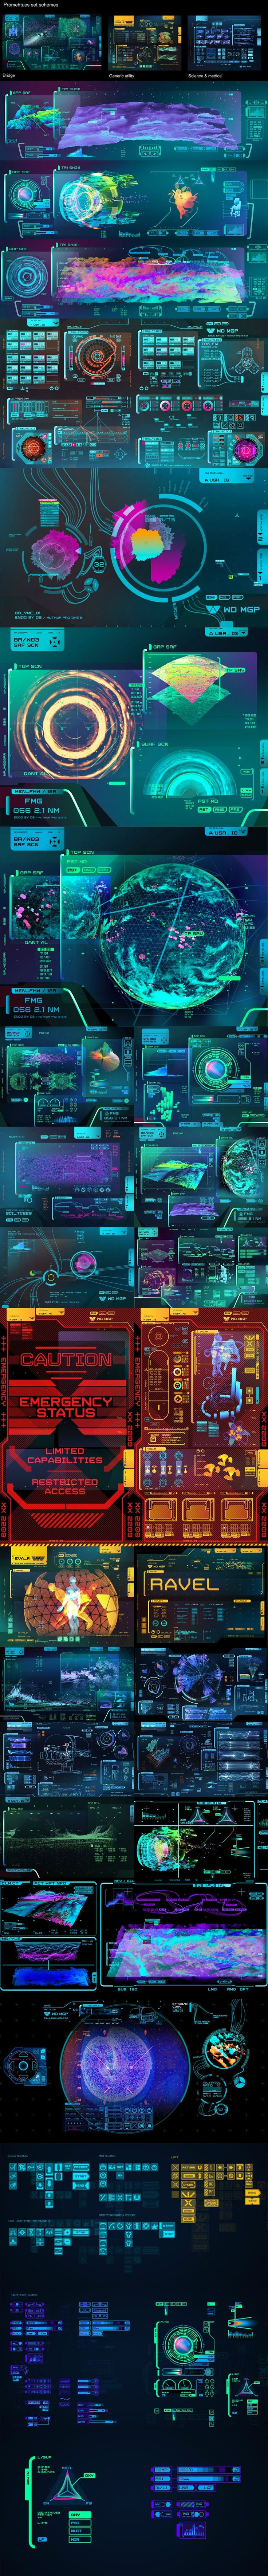 Conceptual user Interfaces & experience constructs of the future, scifi or film vfx